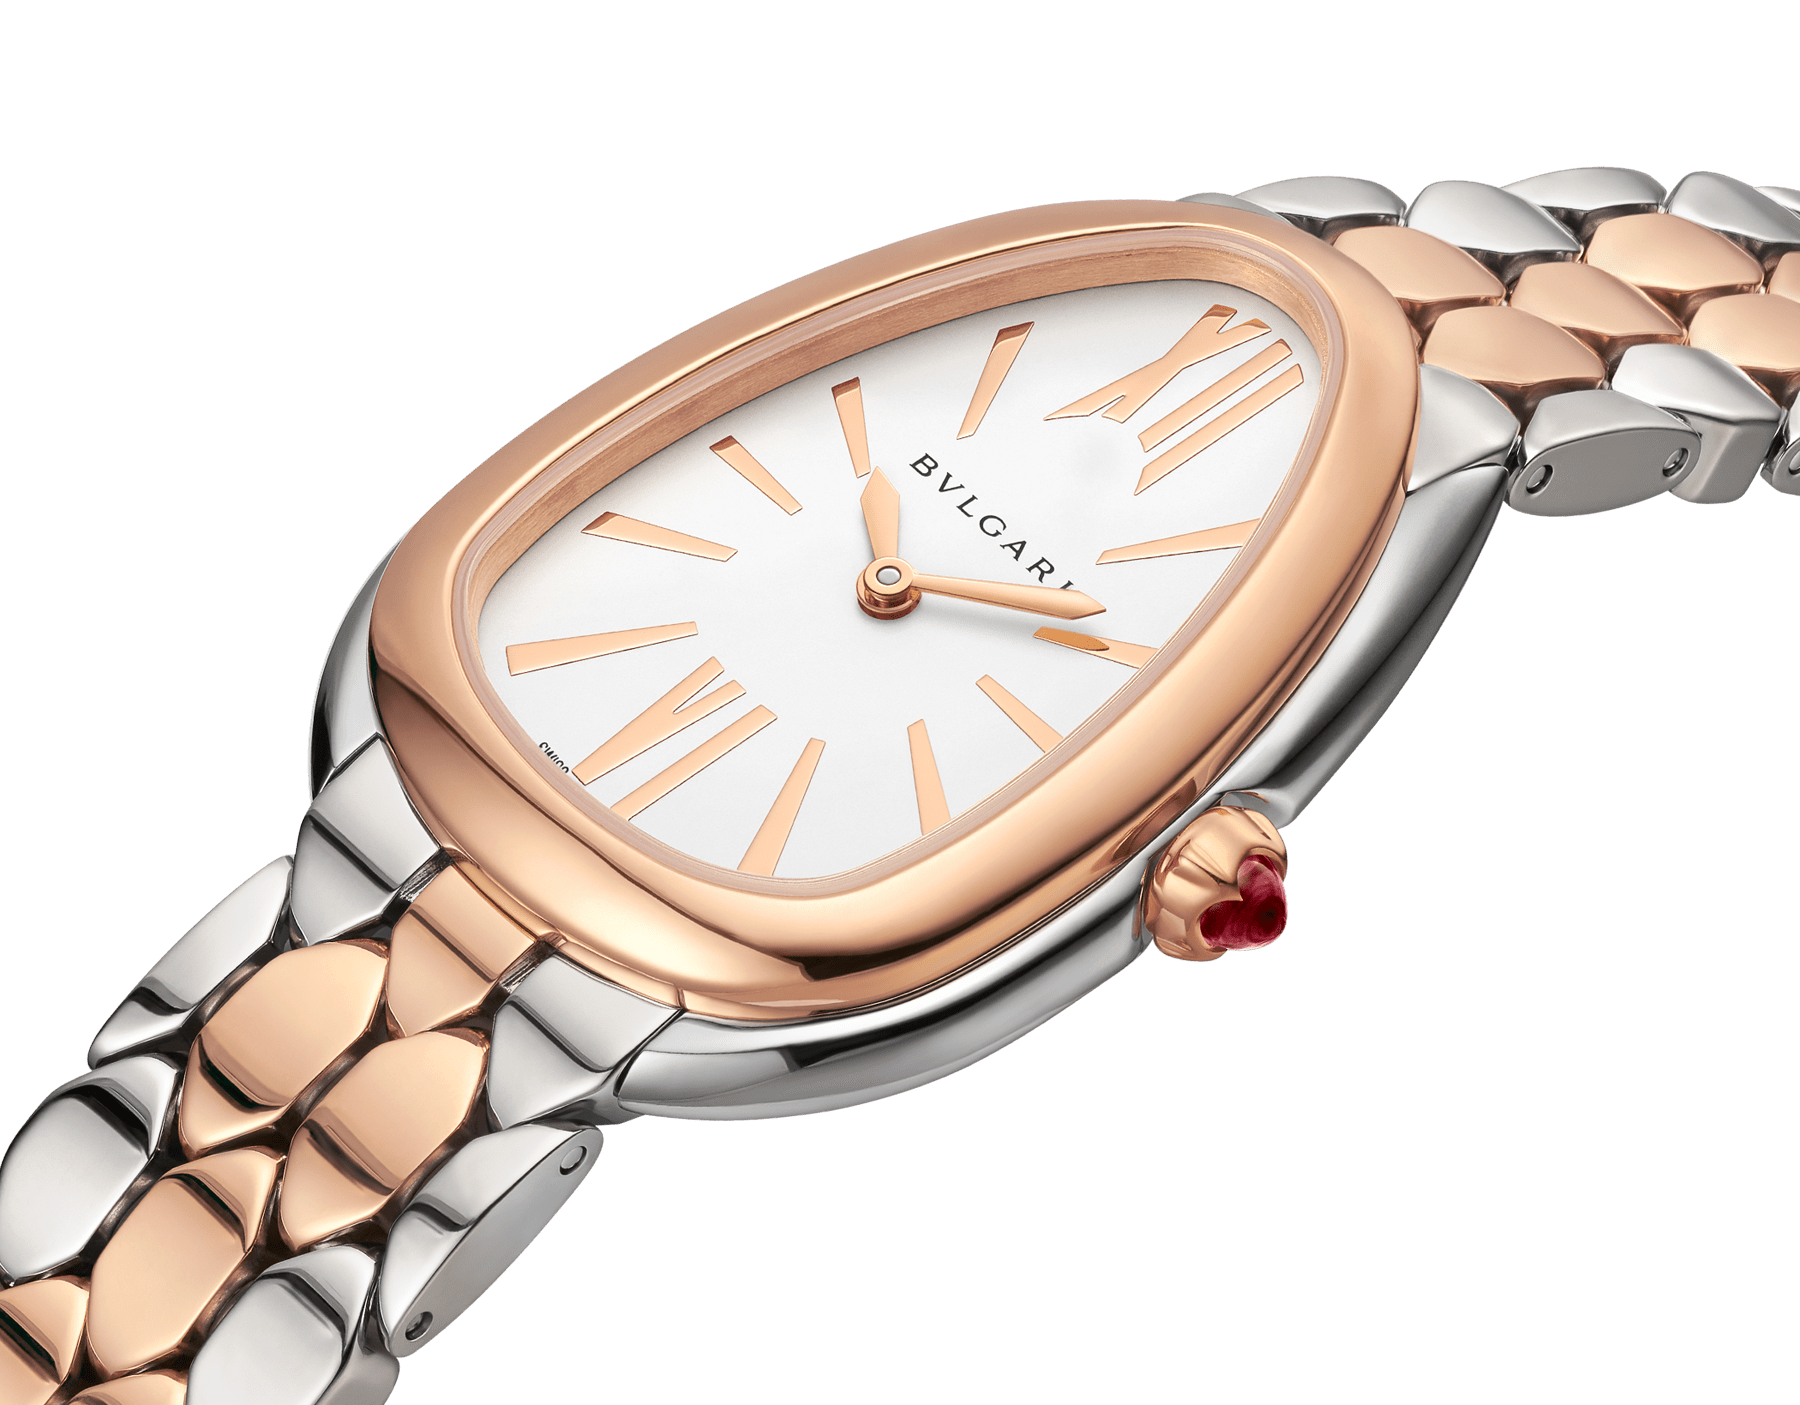 Serpenti Seduttori watch in stainless steel and 18 kt rose gold case and bracelet, with white silver opaline dial 103277 image 2